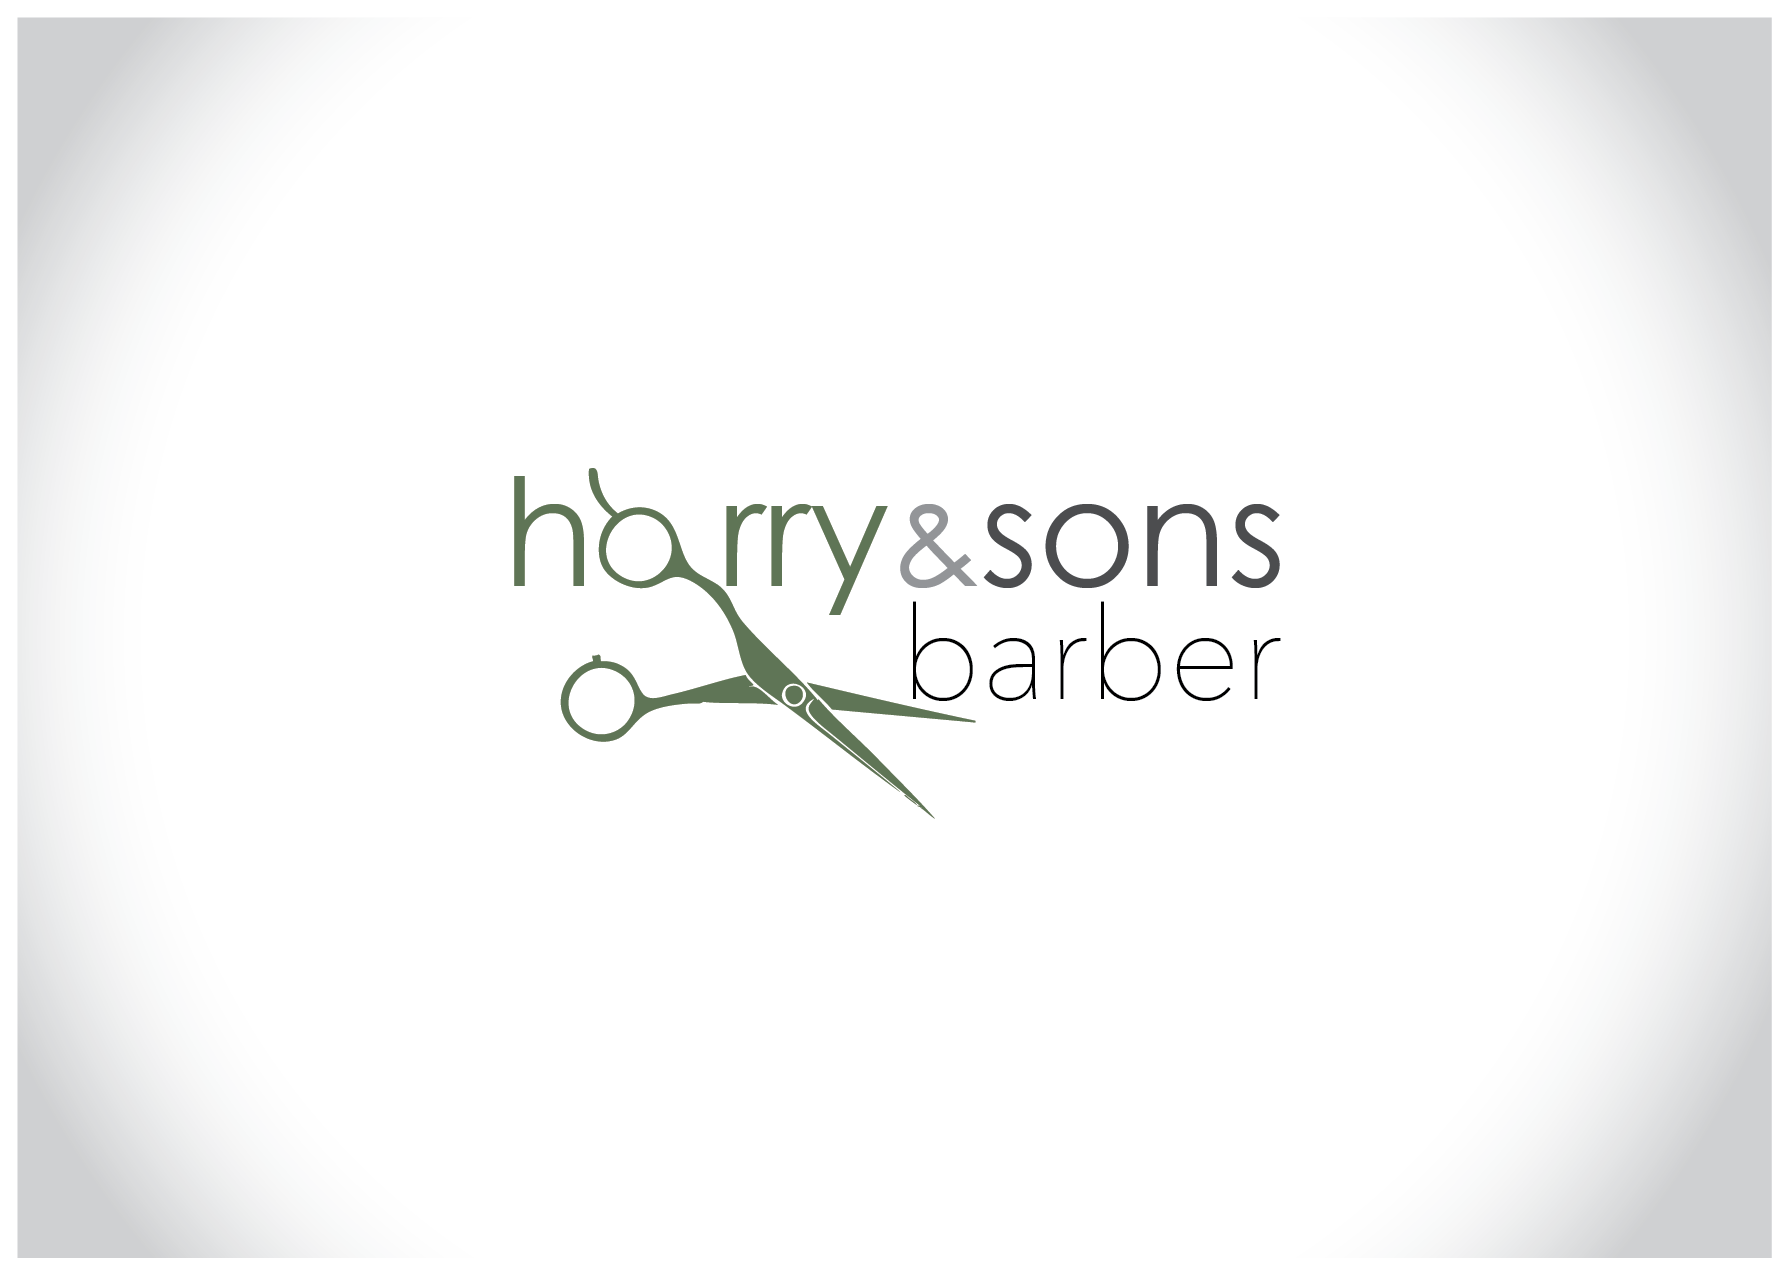 Logo Design by Farrukh Khan - Entry No. 87 in the Logo Design Contest Captivating Logo Design for Harry and Sons Barber.